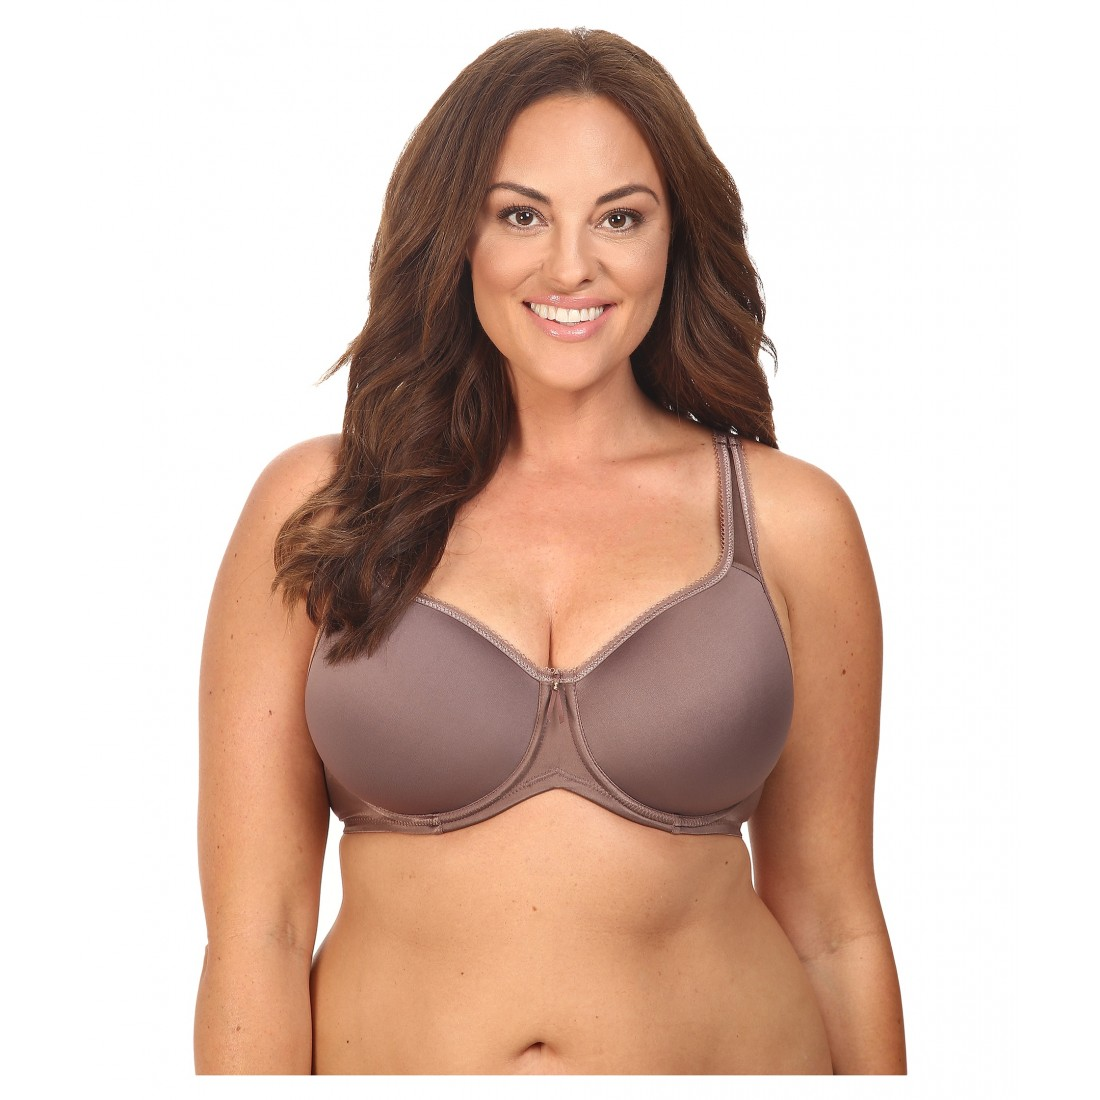 c1cde4f1eb1 Wacoal Basic Beauty Spacer Underwire T-Shirt Bra 853192 ZPSKU 8418603 Deep  Taupe